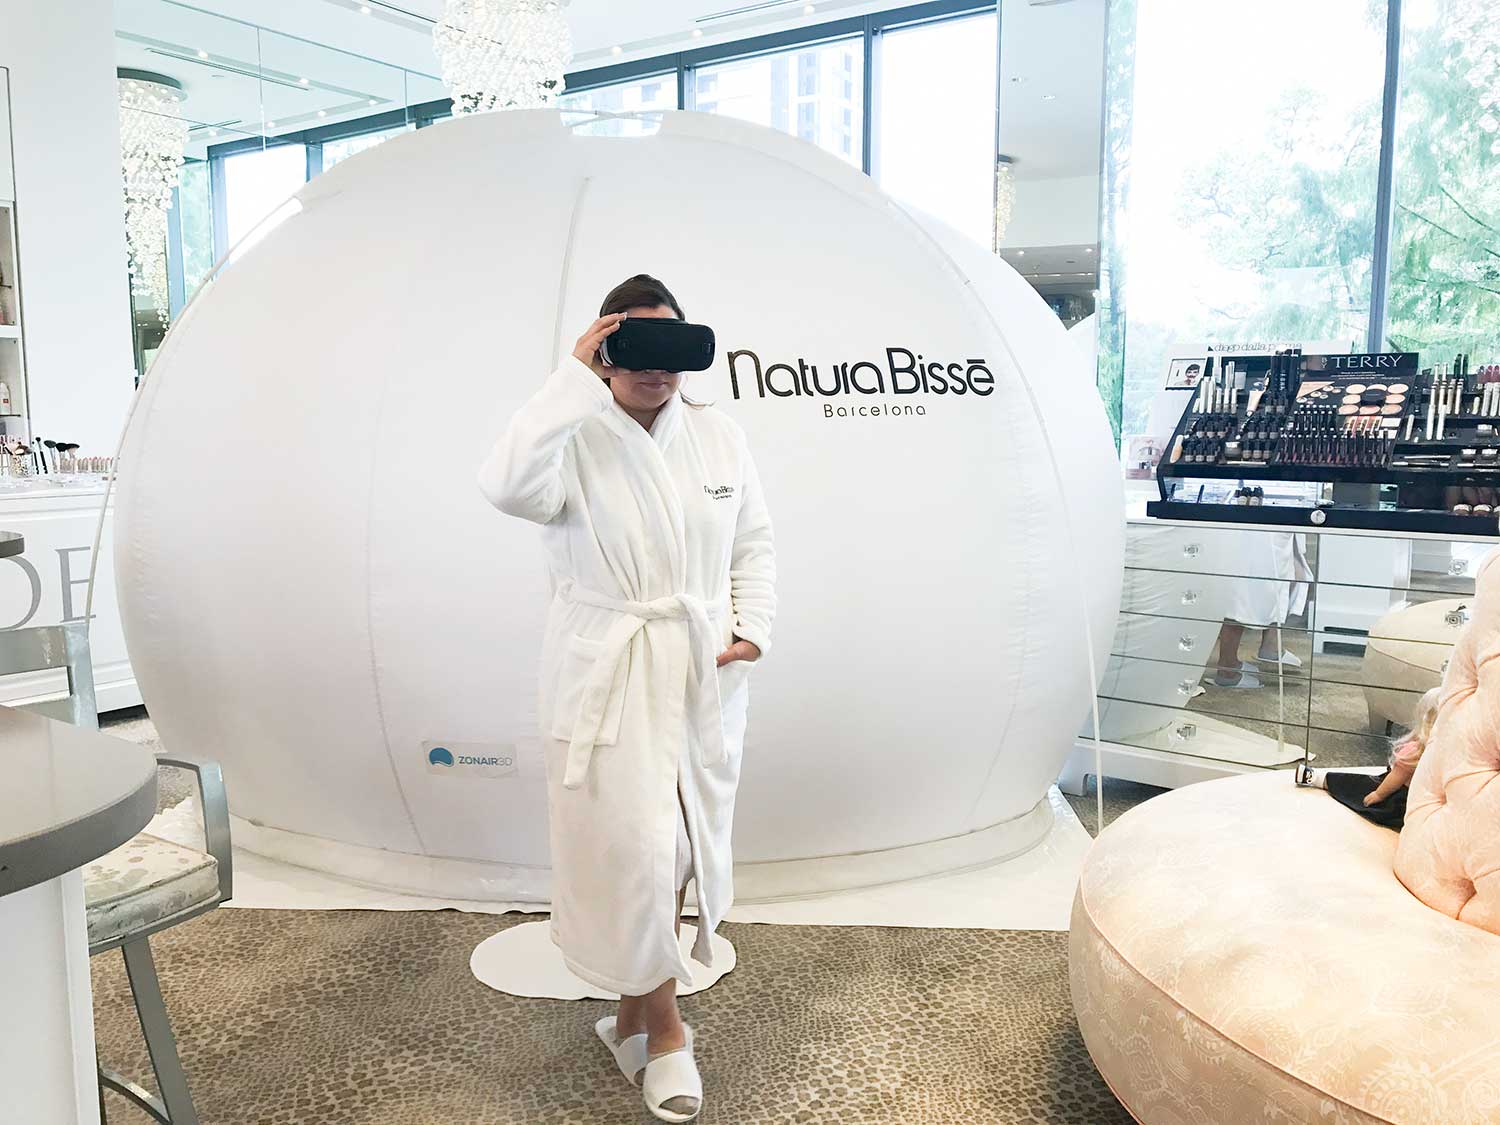 Natura BIsse Bubble Facial Experience